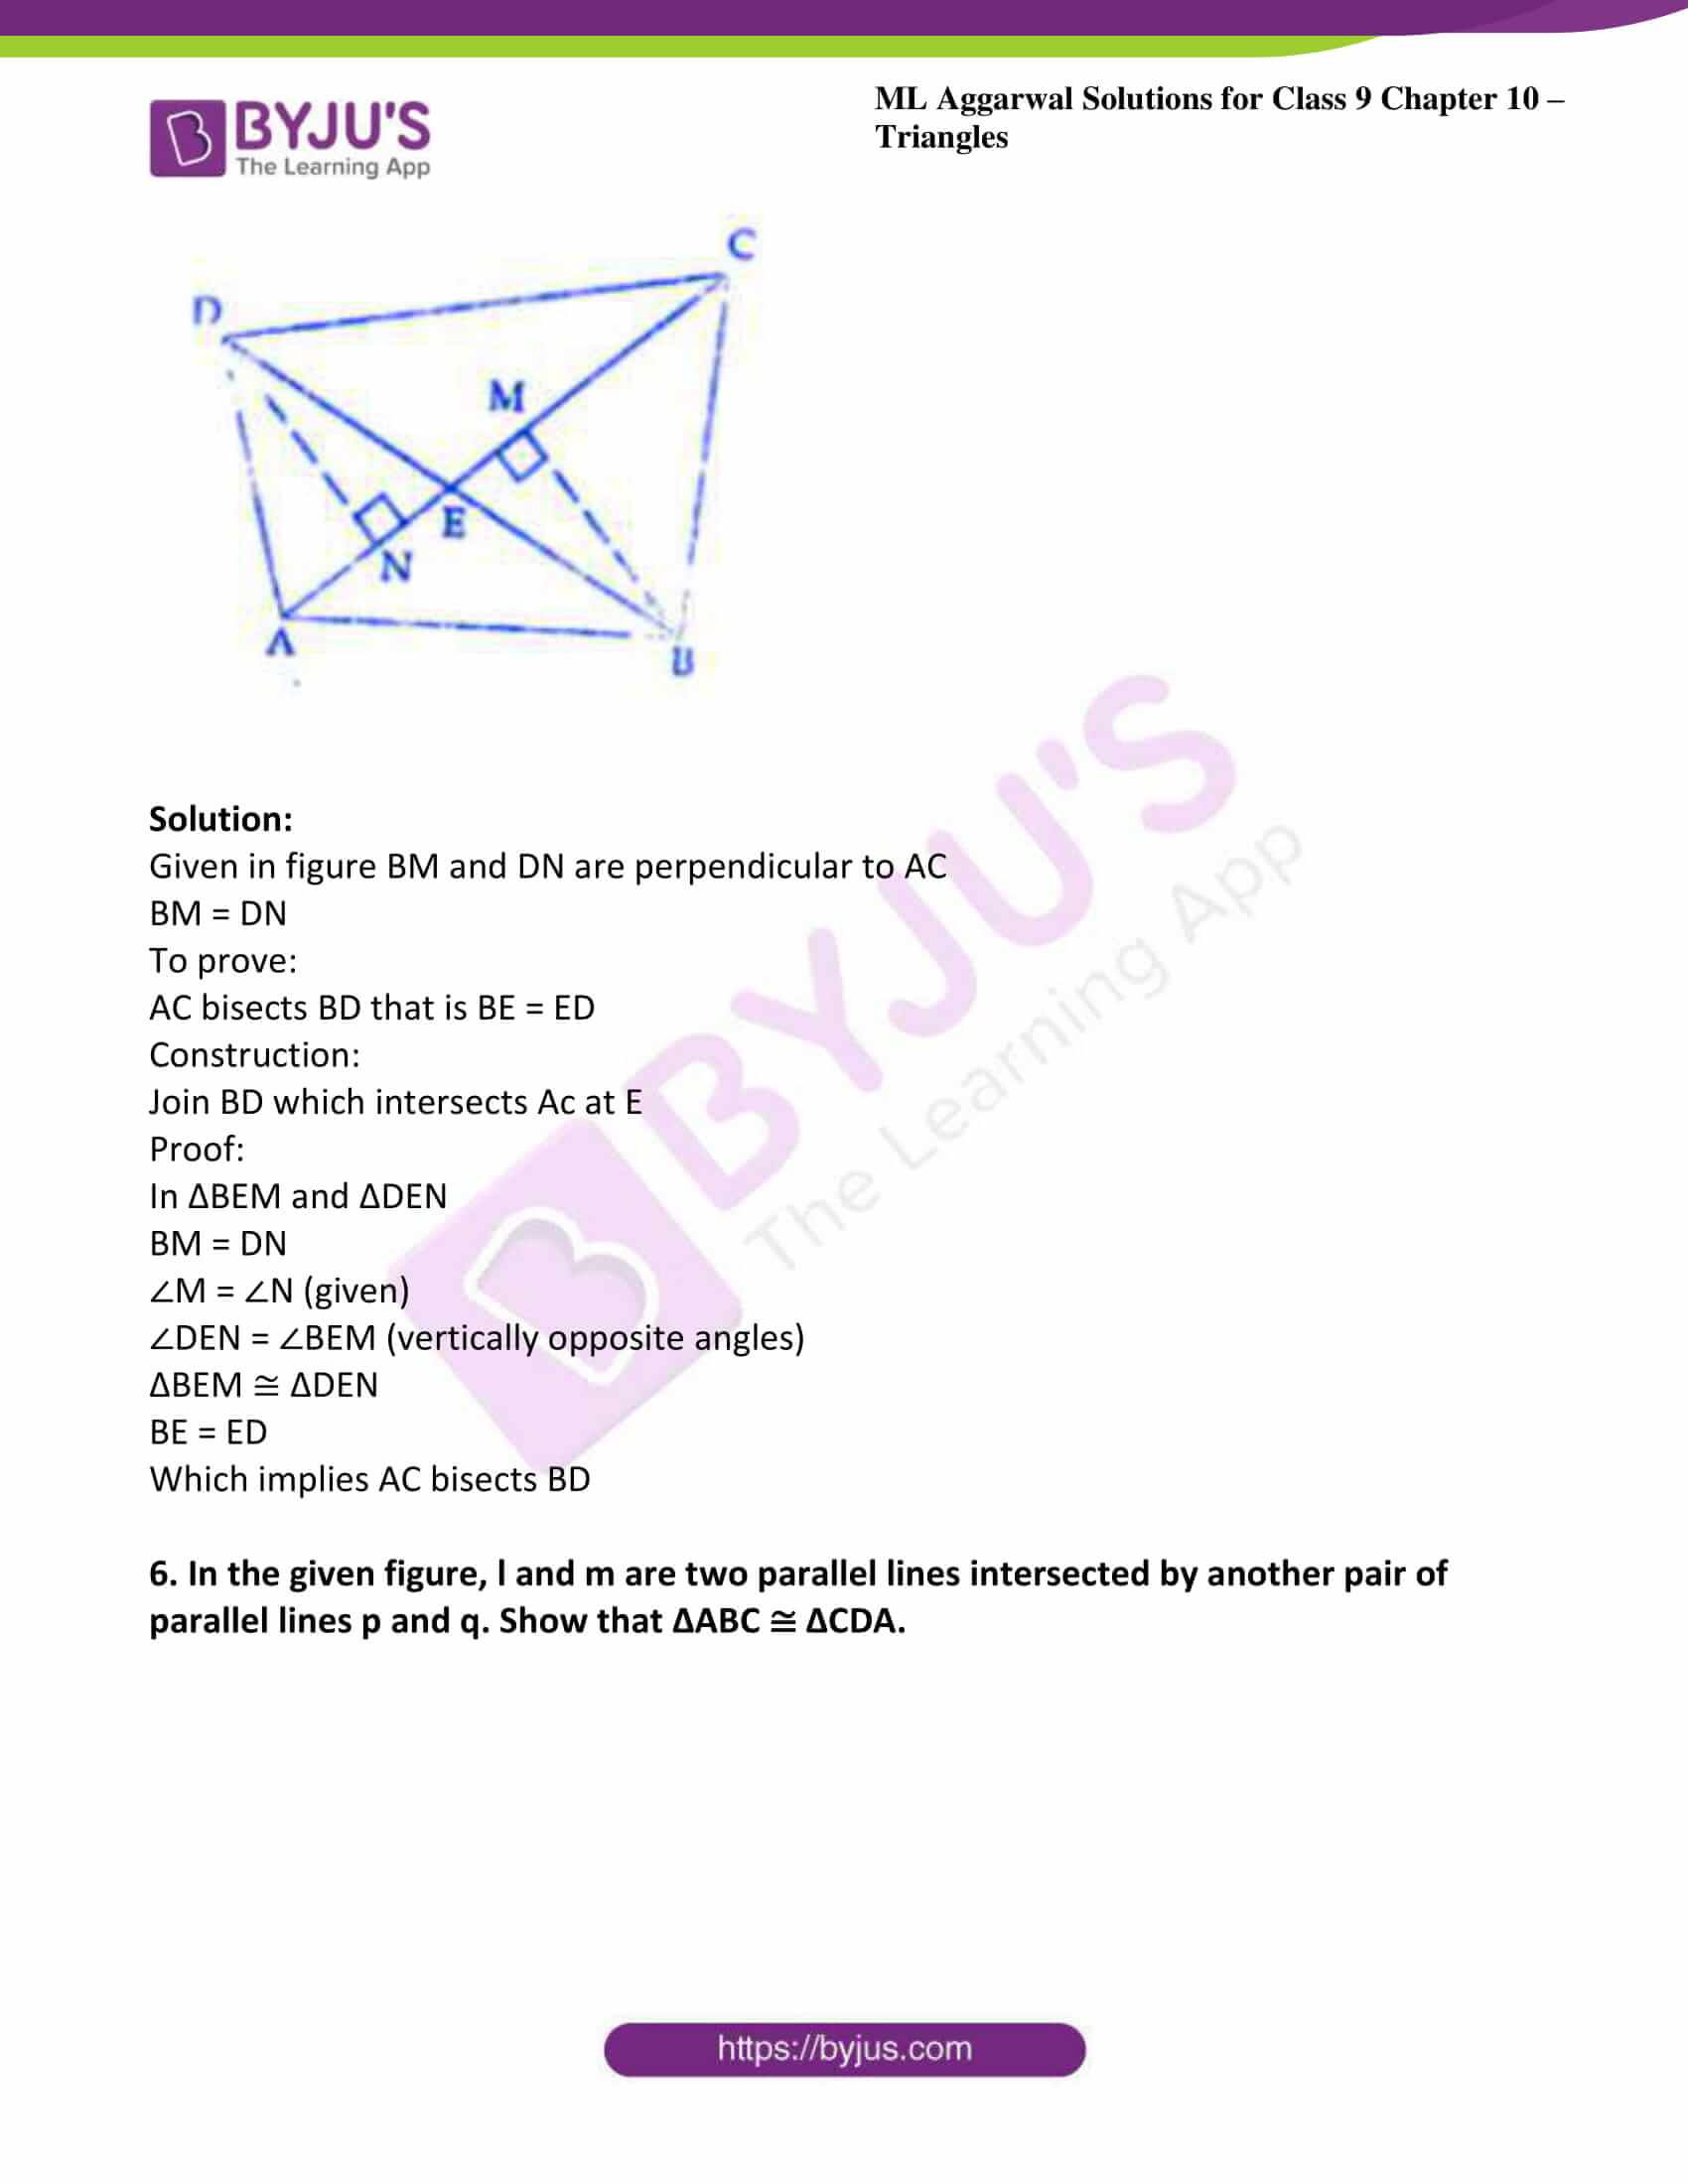 ml aggarwal solutions for class 9 maths chapter 10 12